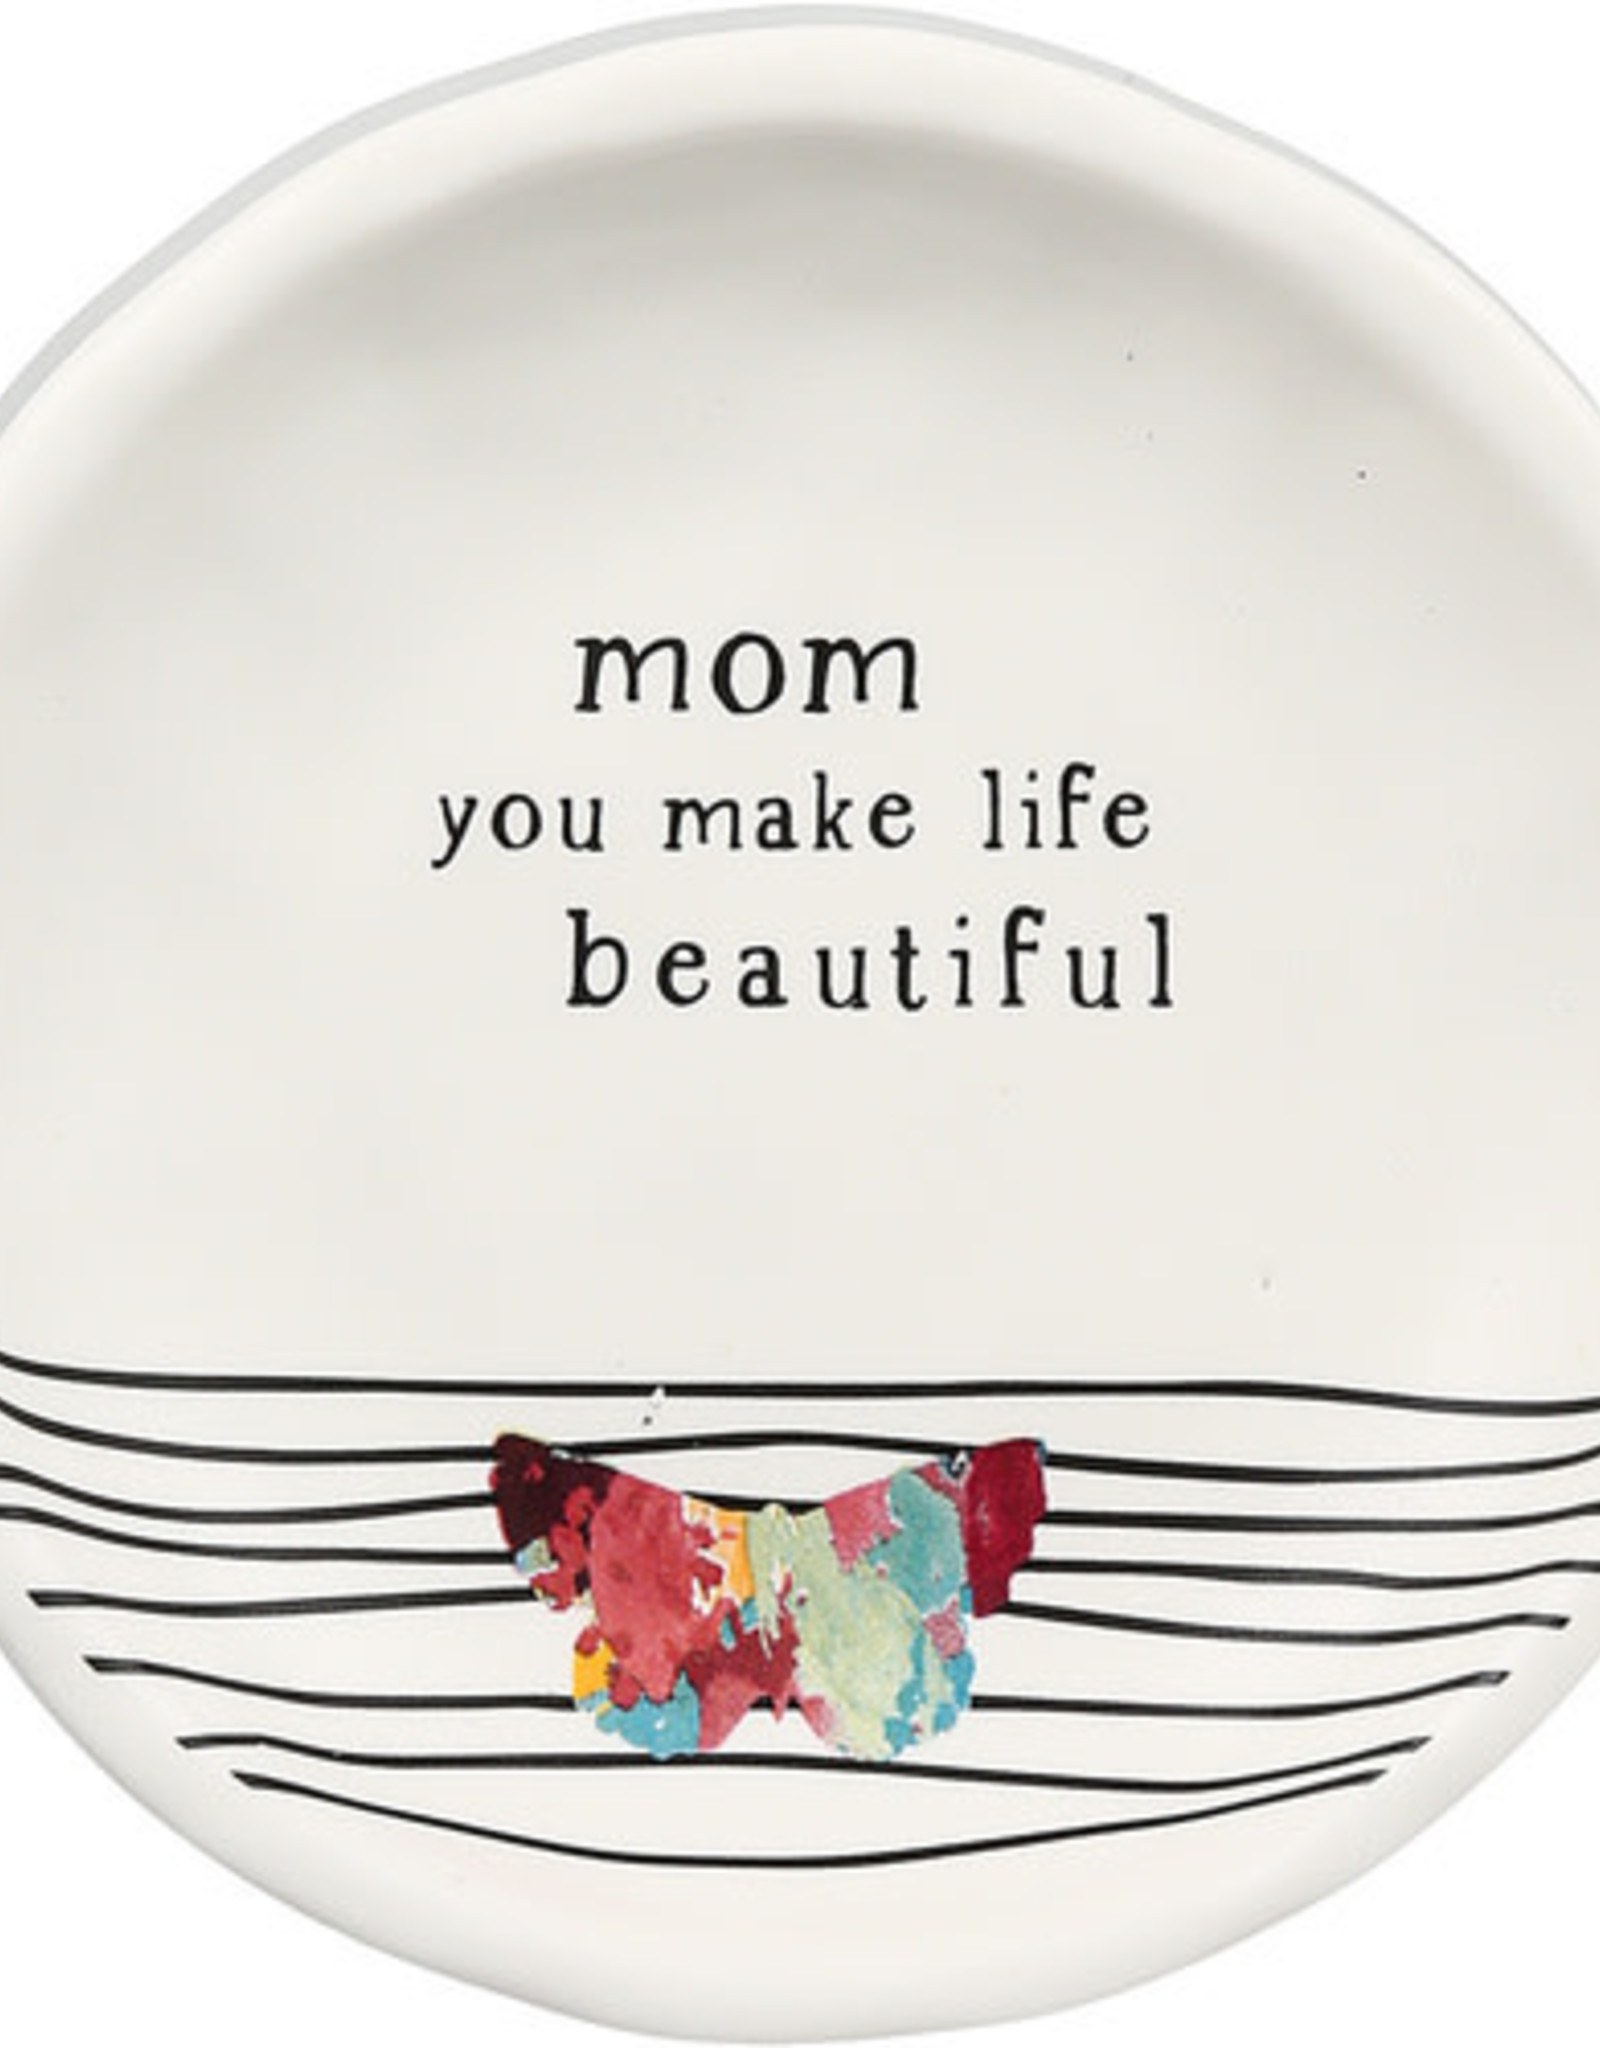 Pavilion Keepsake Dish Mom